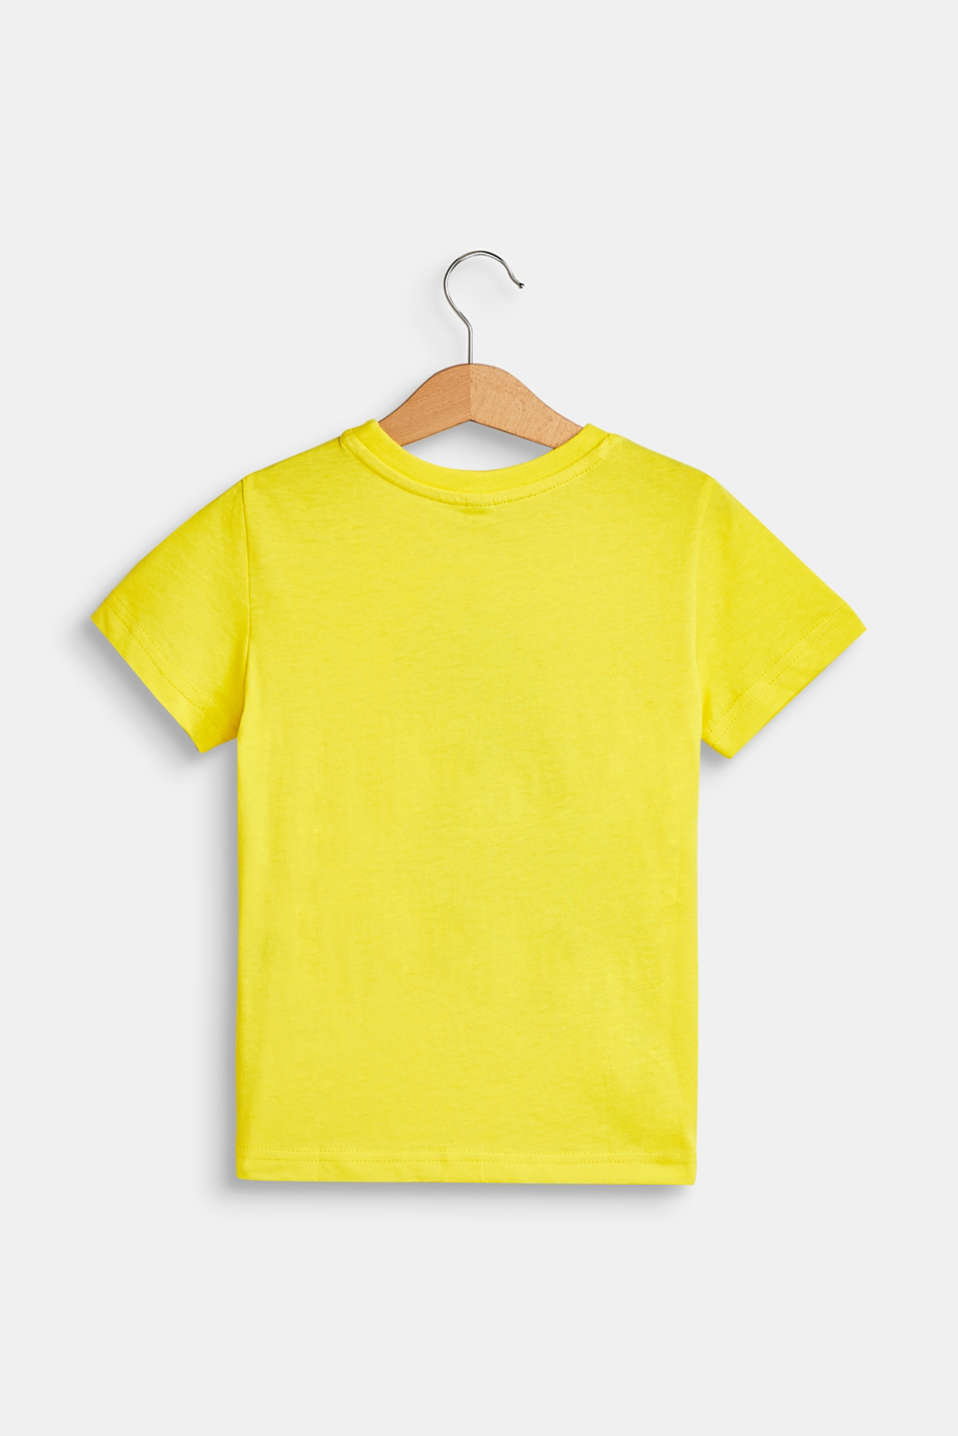 Front print T-shirt, 100% cotton, BRIGHT YELLOW, detail image number 1